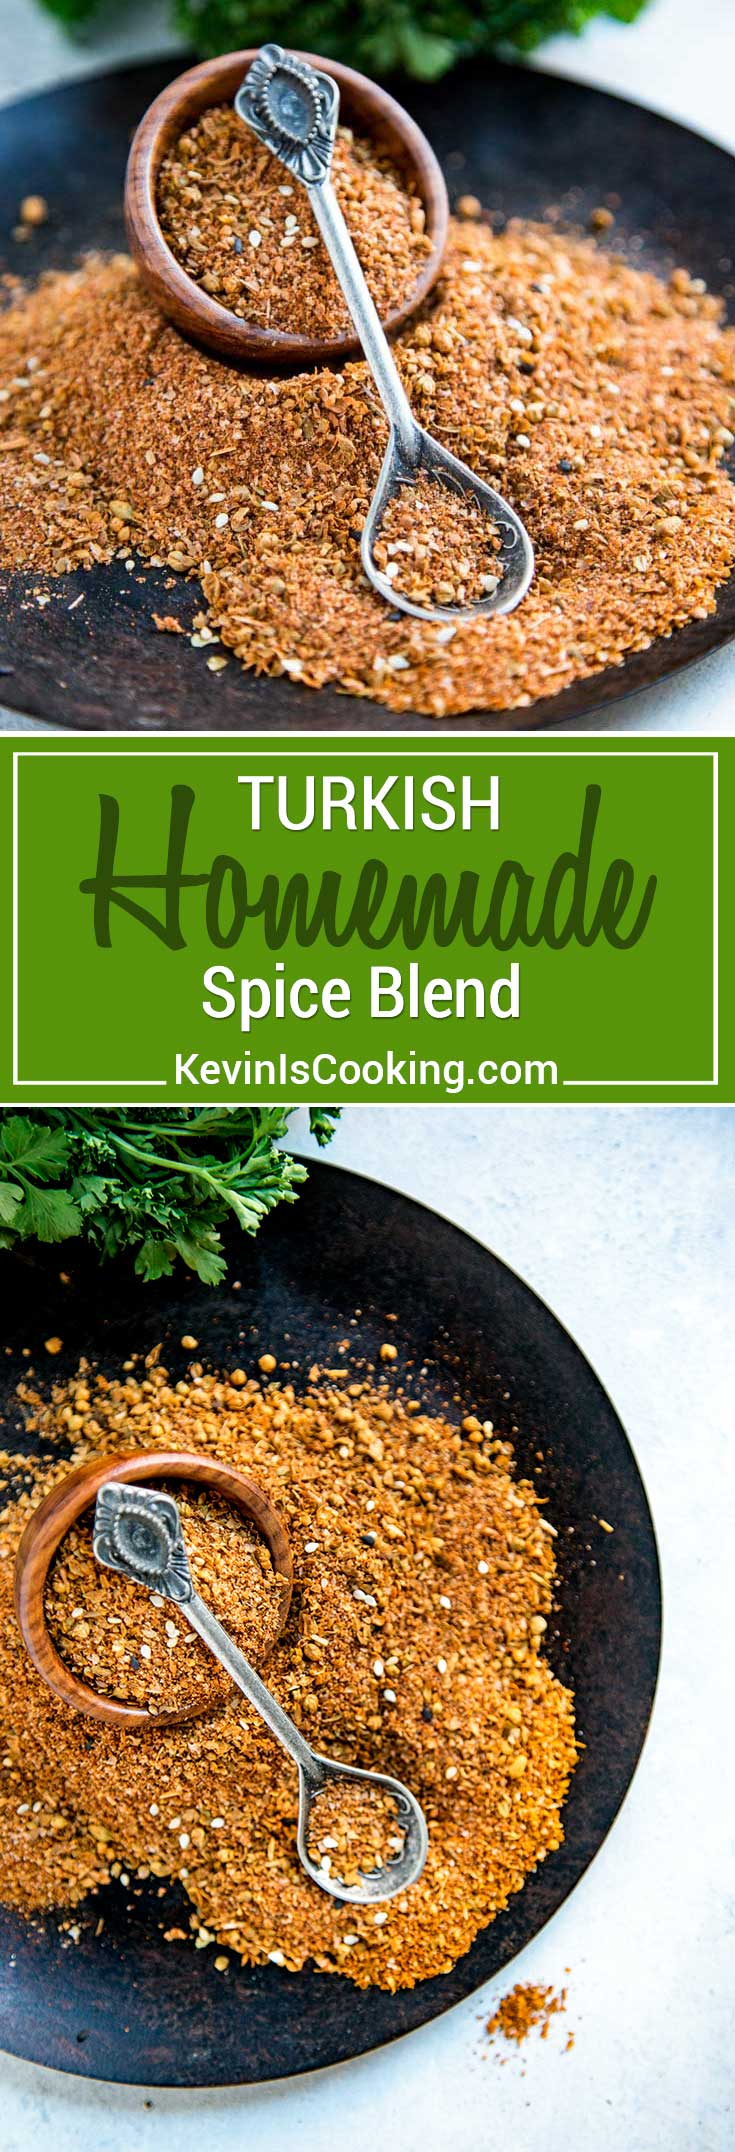 This Turkish Spice Blend is a warm and earthy seasoning rich with cumin, pepper, paprika and Middle Eastern spices and sesame seeds. Perfect on roasted meats, as a dry rub and seasoning.